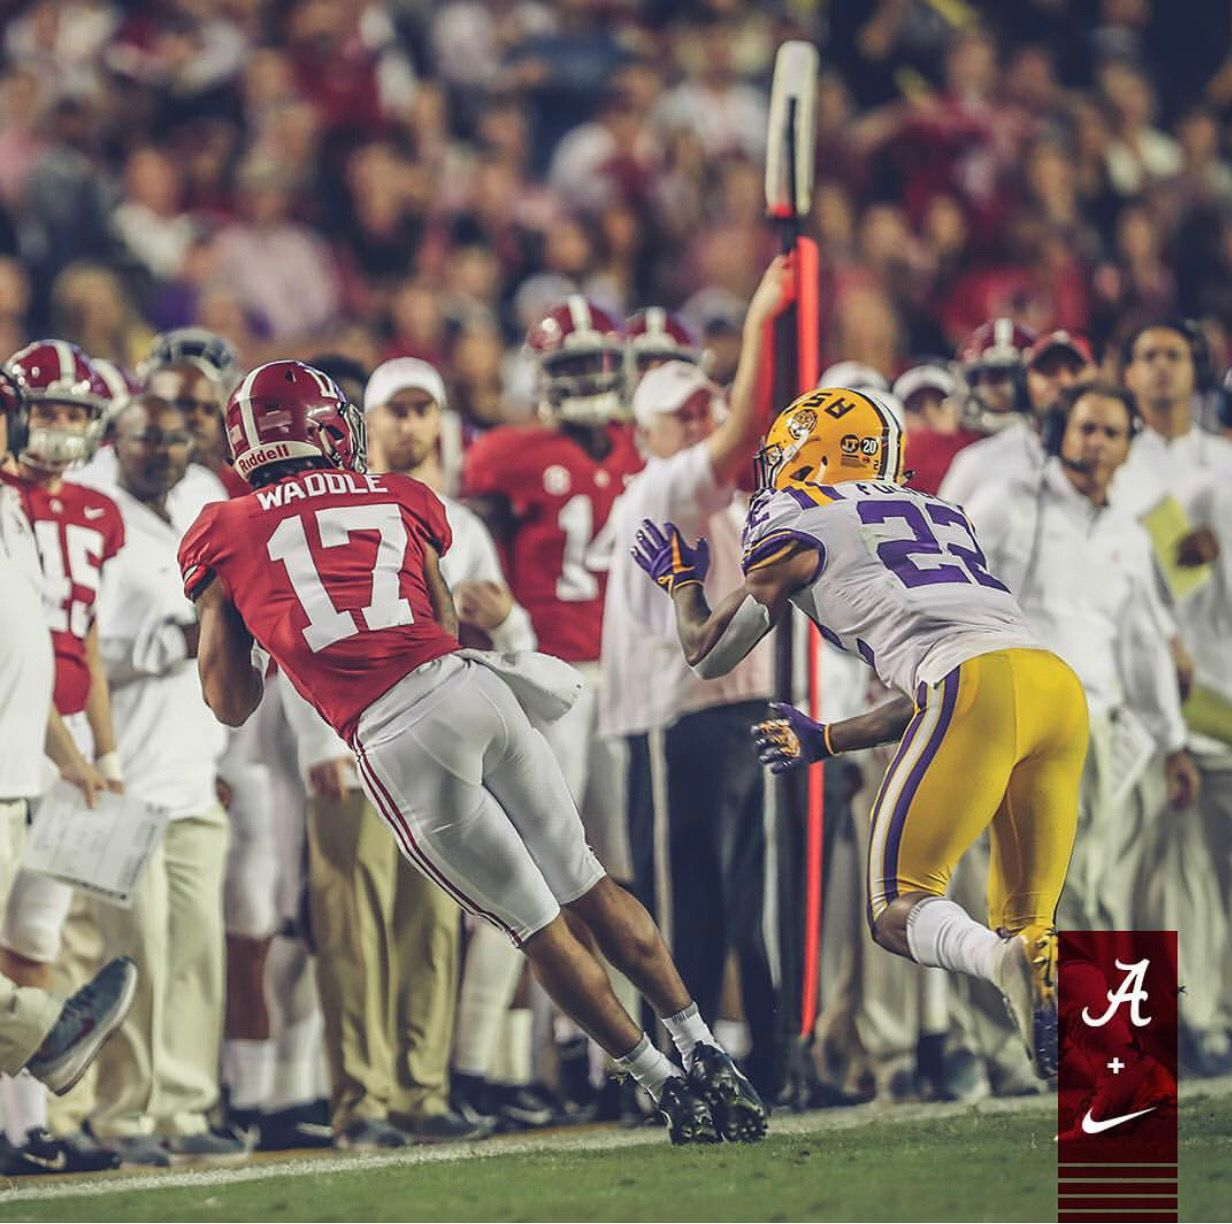 Jaylen Waddle Alabama 29 Lsu 0 Alabama Rolltide Bama Builtbybama Rtr Crimsontide Rammerjamm Crimson Tide Football Alabama Crimson Tide Bama Football